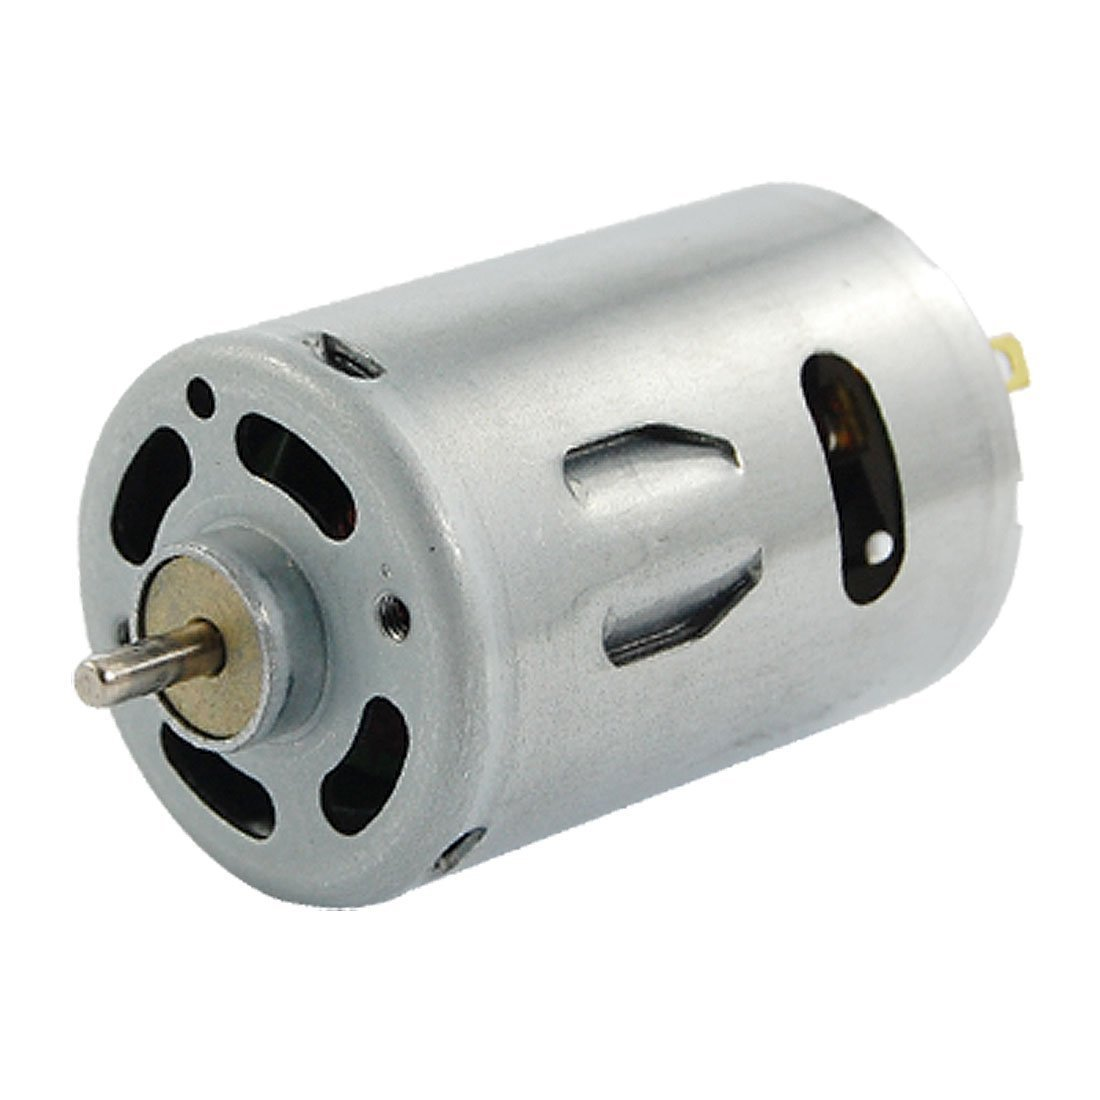 Buy Dc Motor 18000rpm Motor 12v For Electronics Project